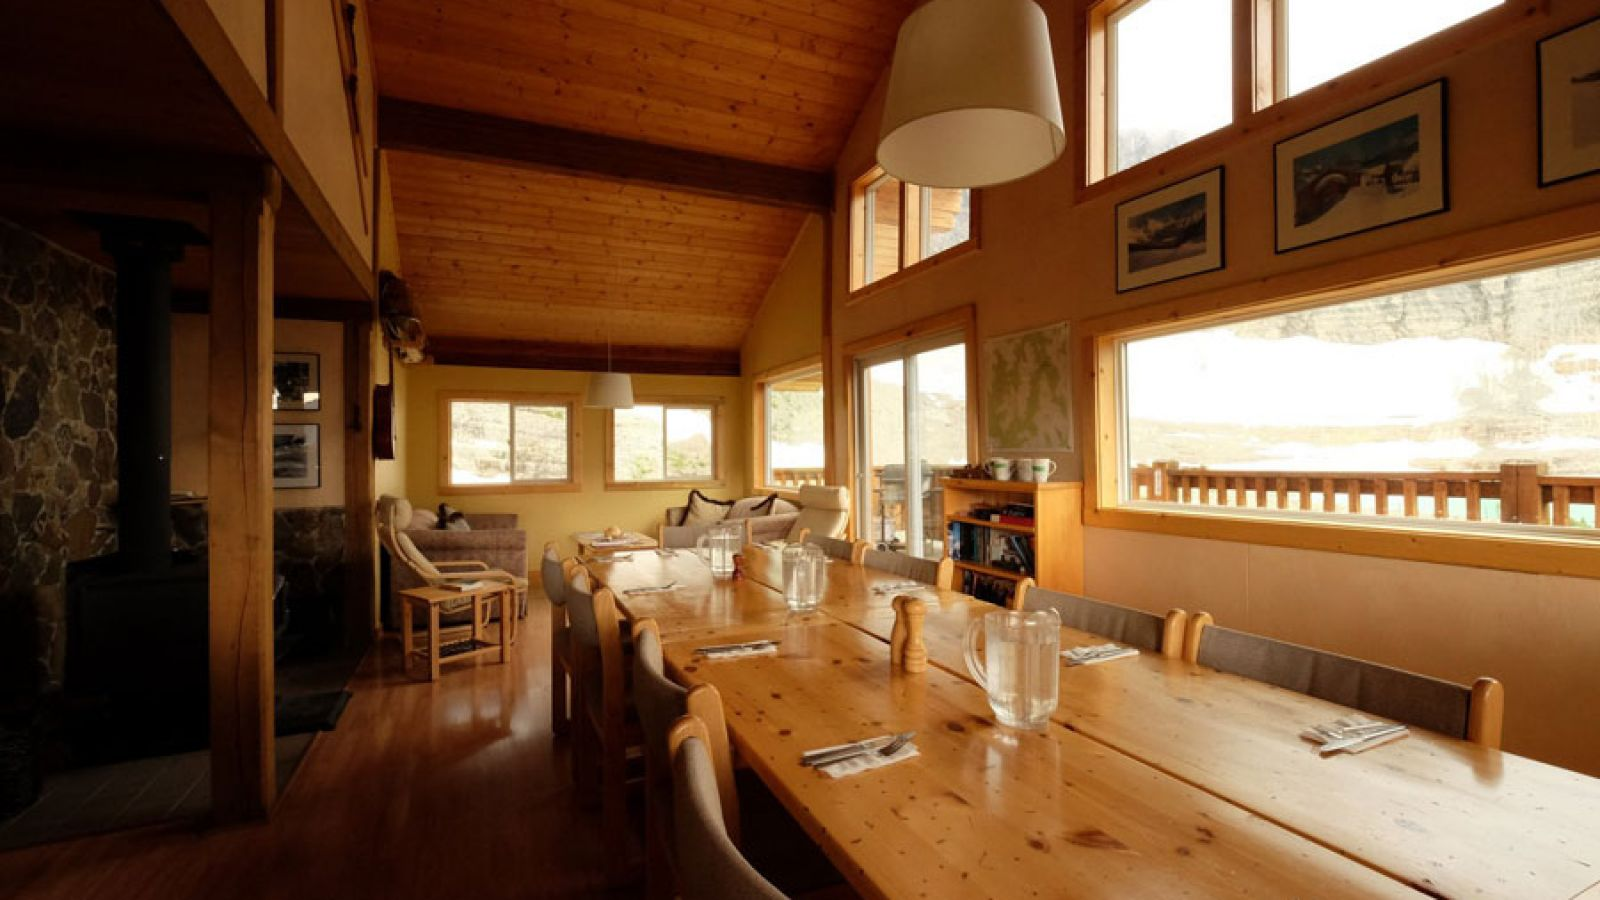 Luxury accommodation and the perfect place to dine and relax.